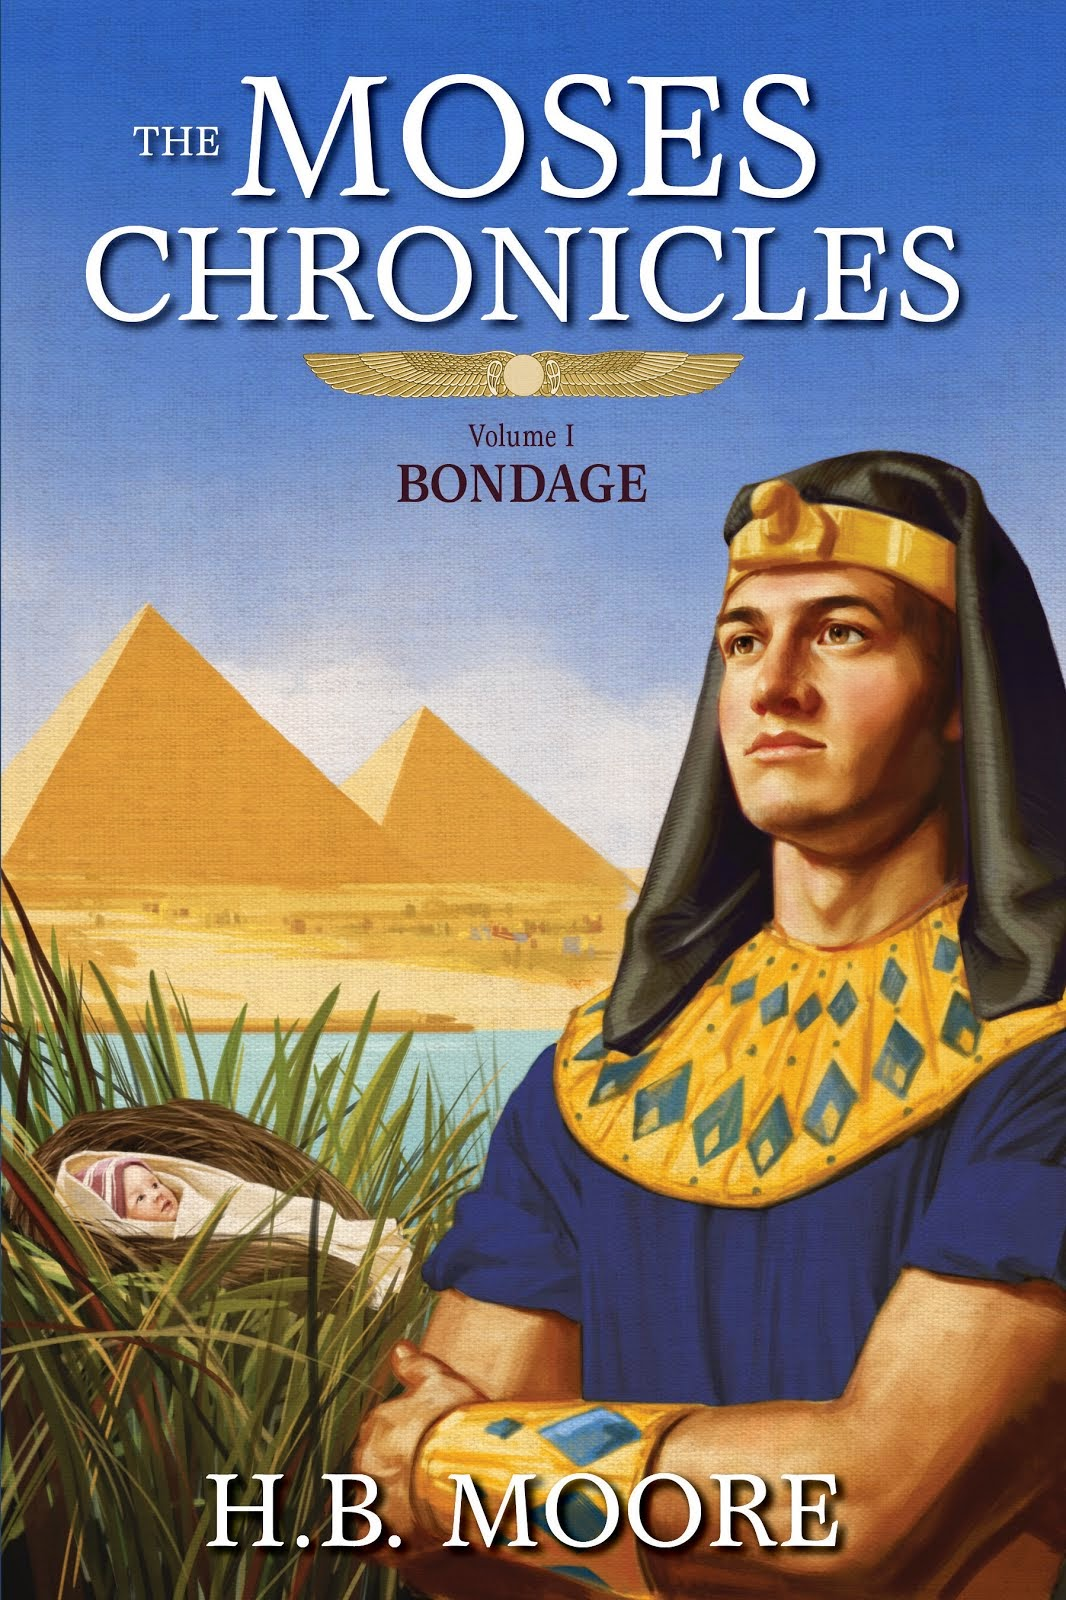 The Moses Chronicles: Bondage (book 1)